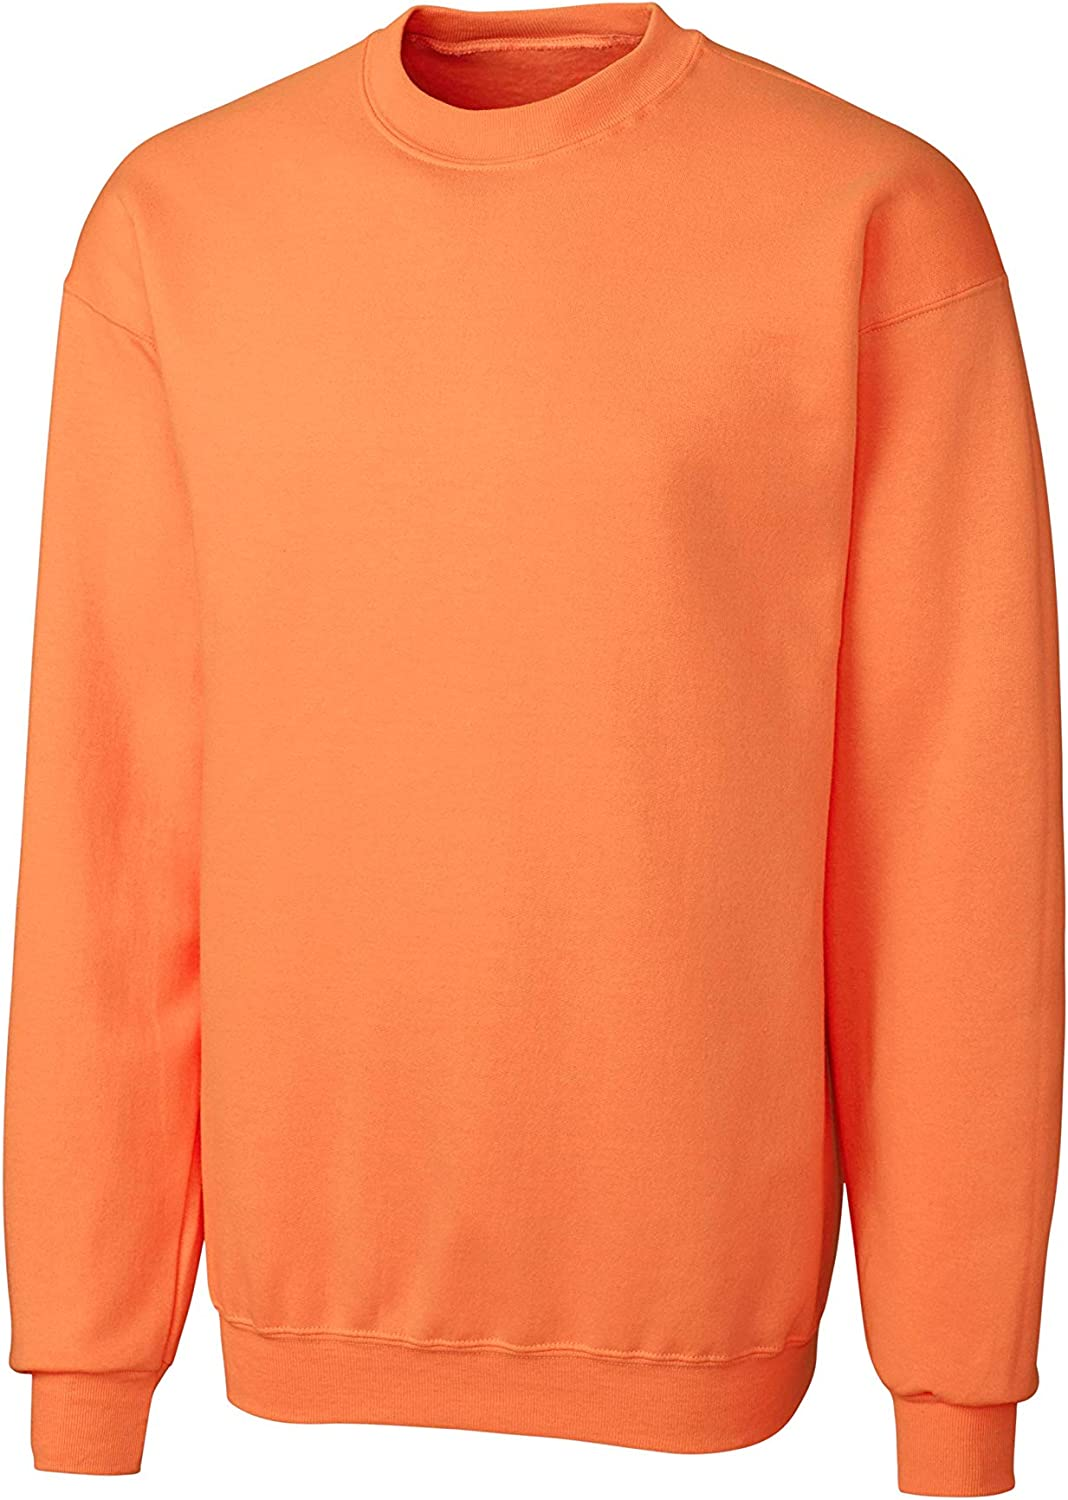 StoutMensShop Regular Big Tall Soft Crew Neck Sweatshirts to Size 7XL in 12 Colors